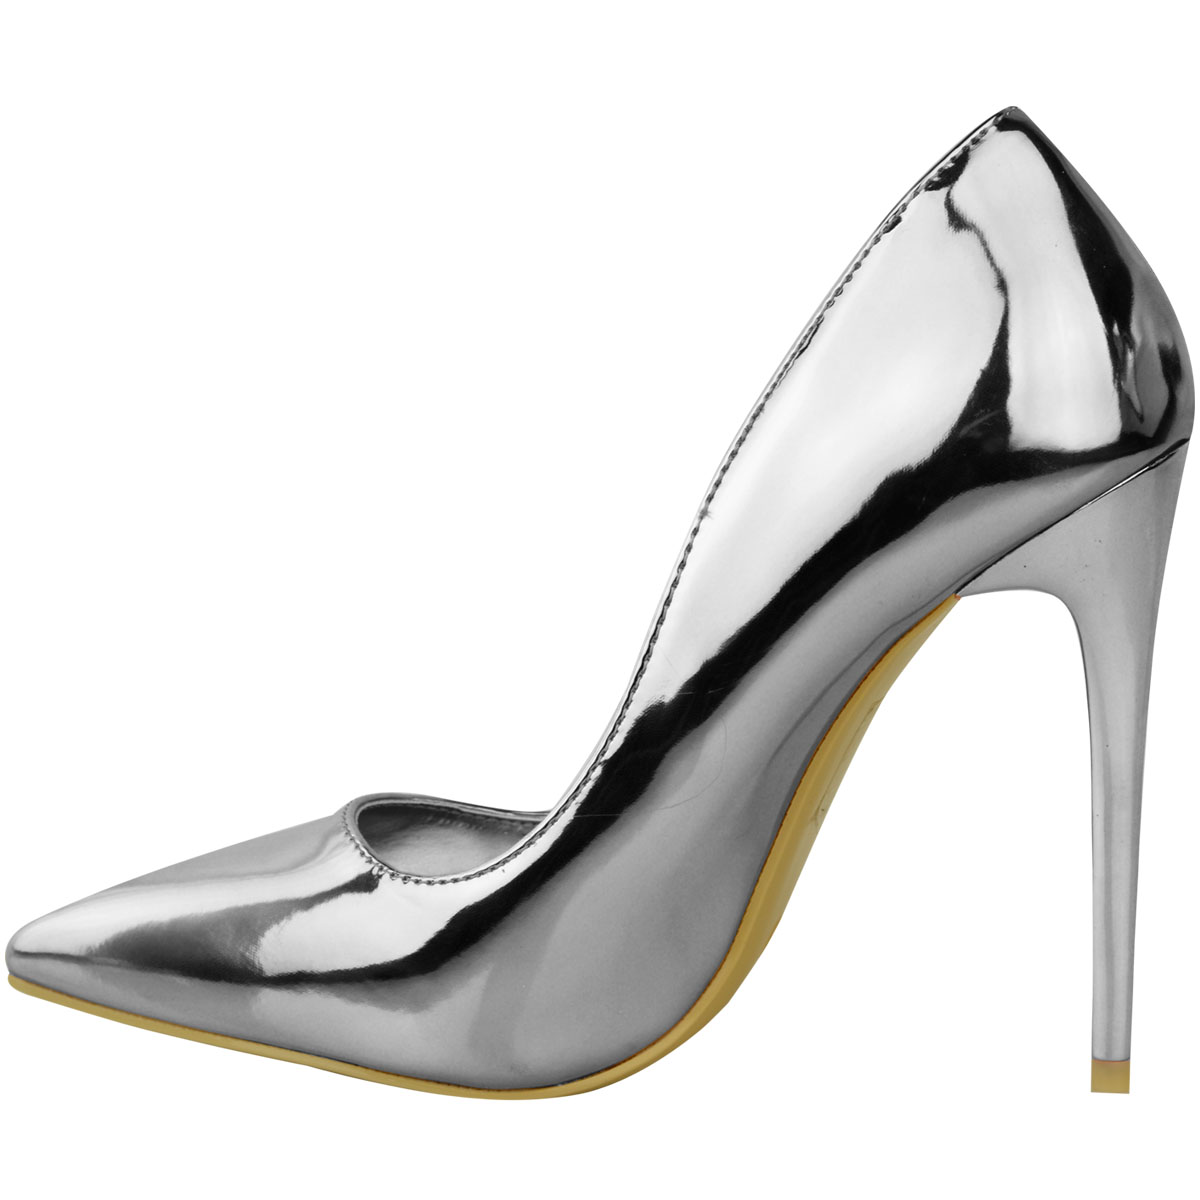 Womens-Ladies-Black-High-Heel-Court-Shoes-Smart-Formal-Occasion-Party-Size-New thumbnail 20